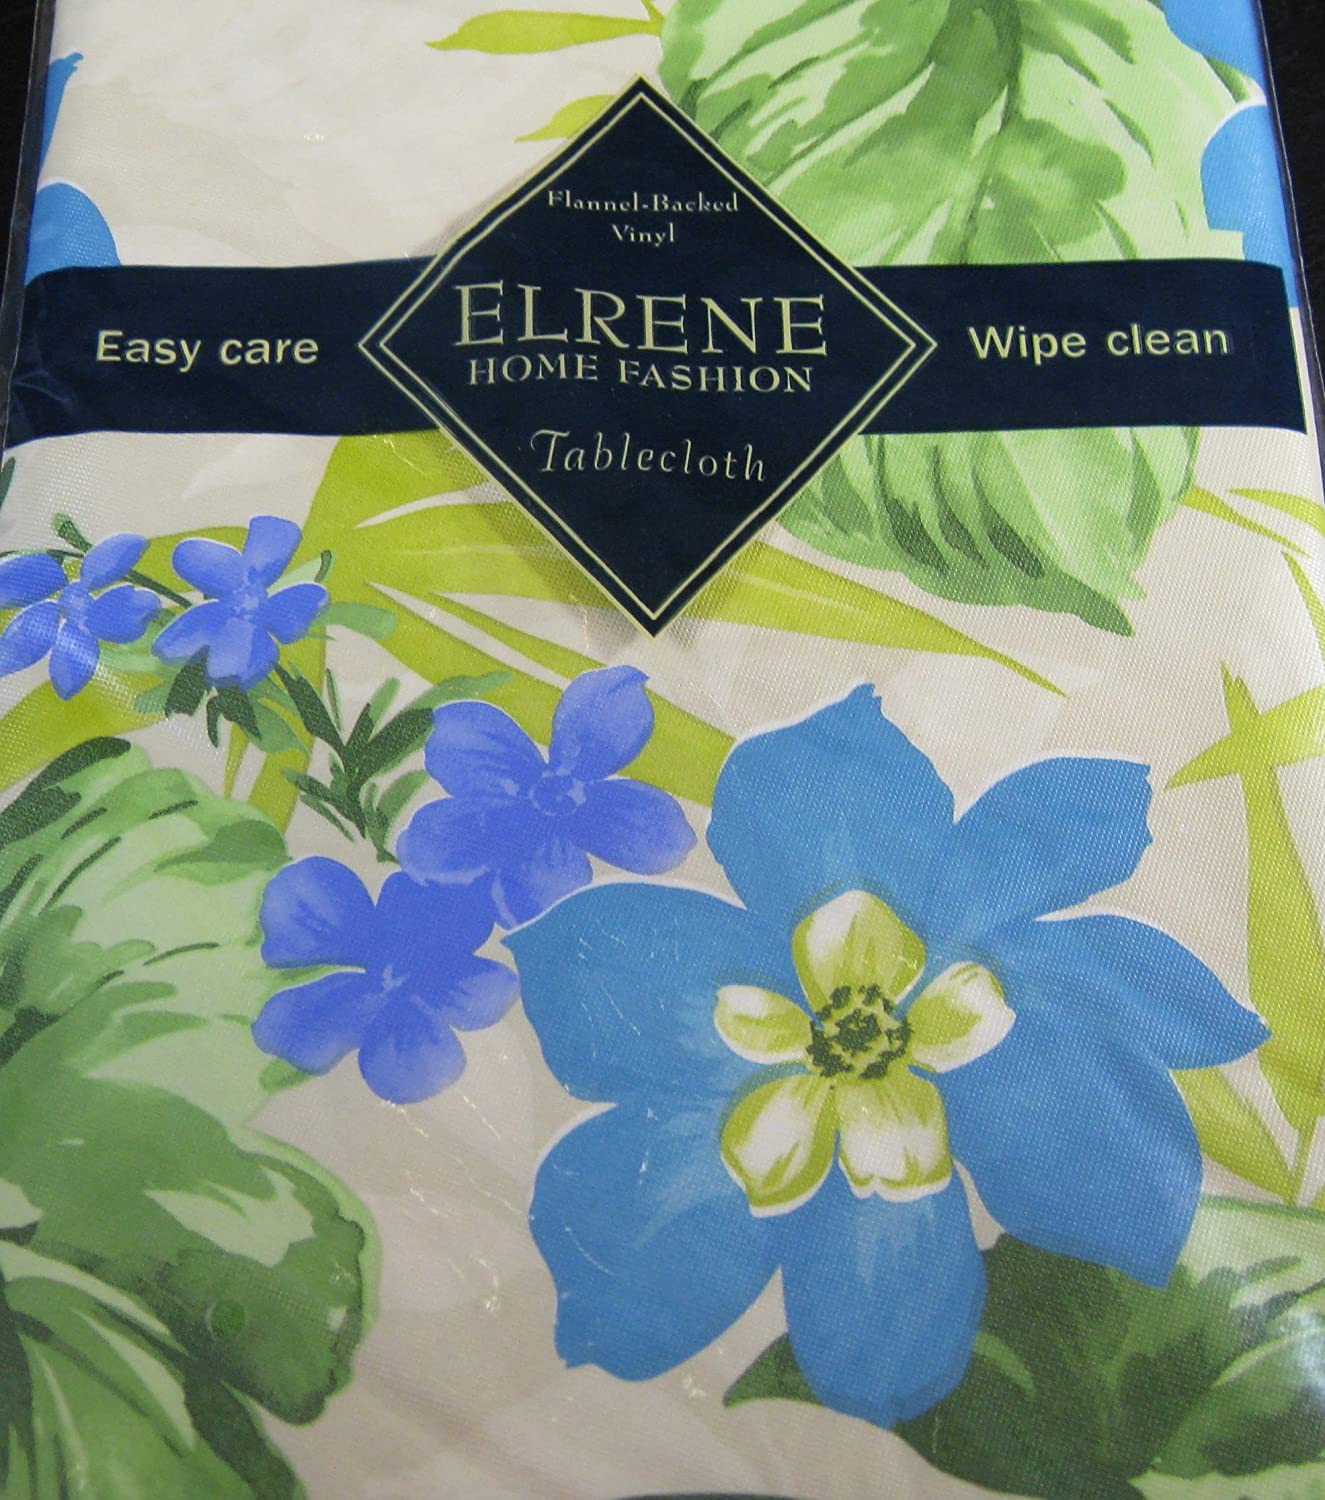 Amazon.com: Flannel Backed Vinyl Tablecloths By Elrene  Tropical Blue  Flowers Assorted Sizes   Square,Oblong U0026 Round (52 X 90 Oblong): Home U0026  Kitchen